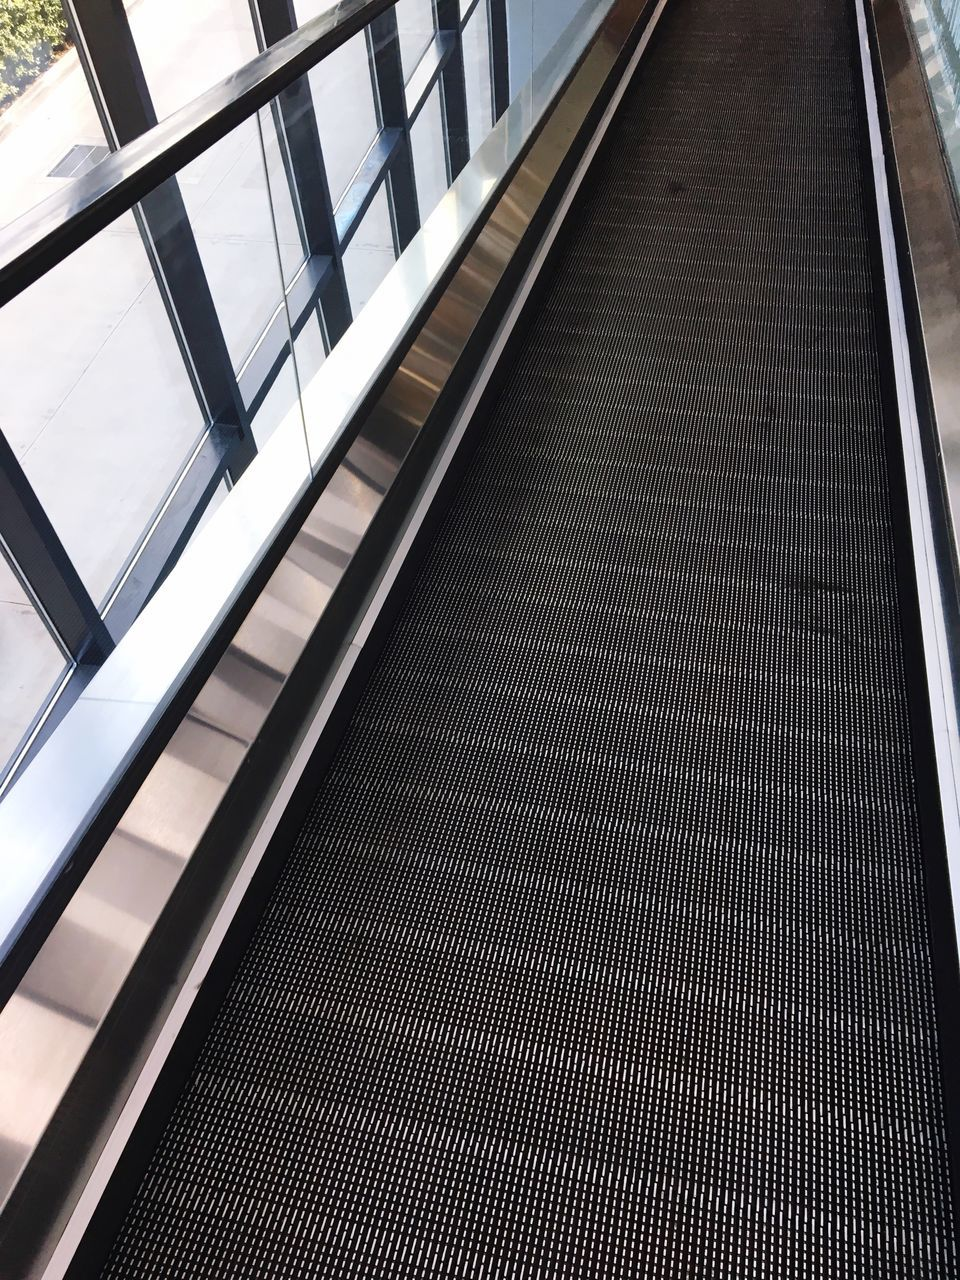 escalator, transportation, indoors, technology, railing, built structure, steps and staircases, convenience, modern, architecture, no people, futuristic, day, close-up